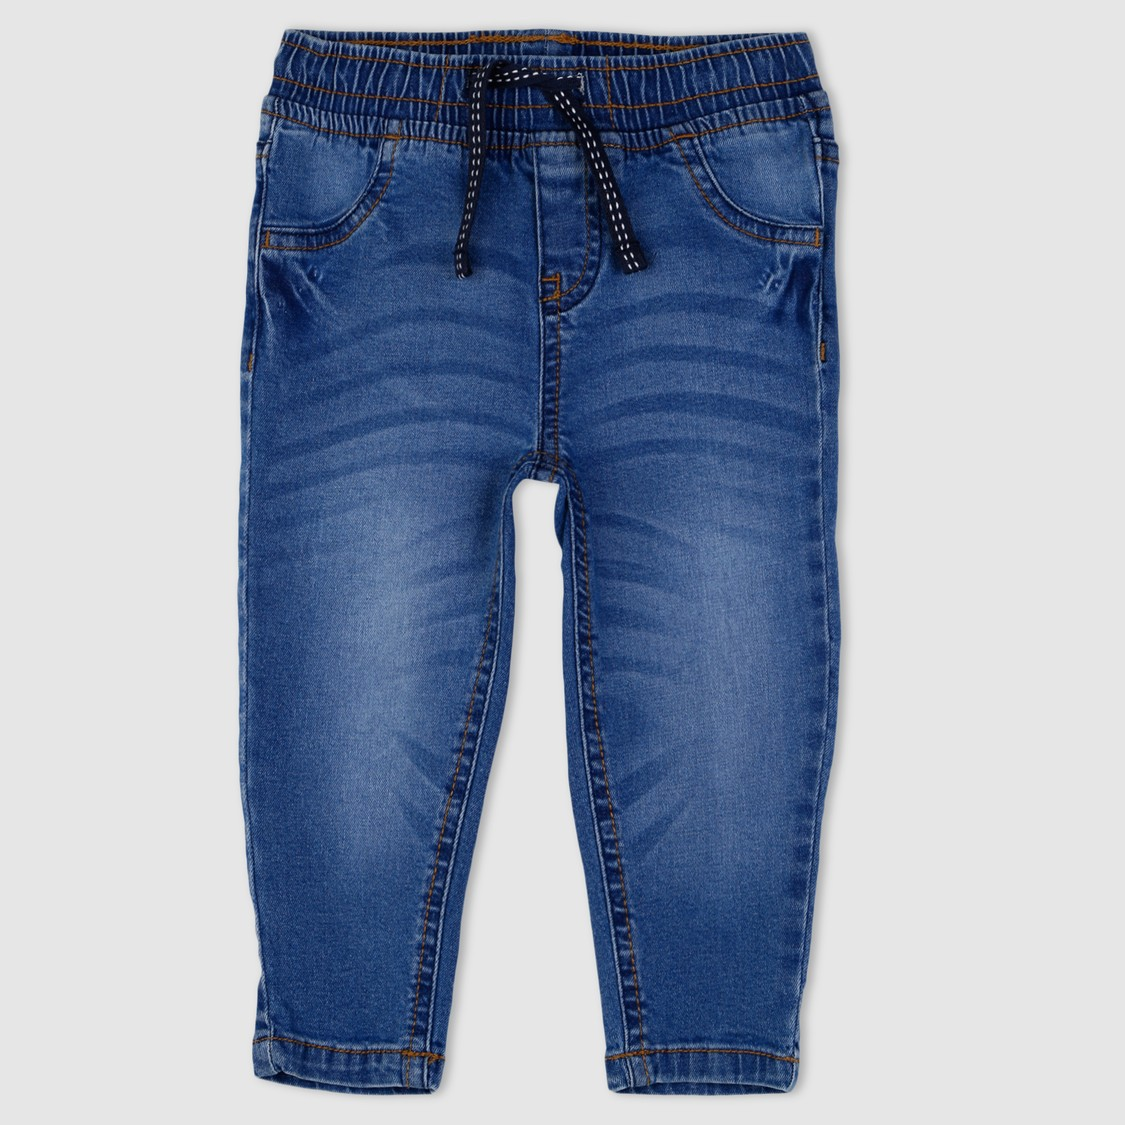 Pull On Jeans with Drawstring